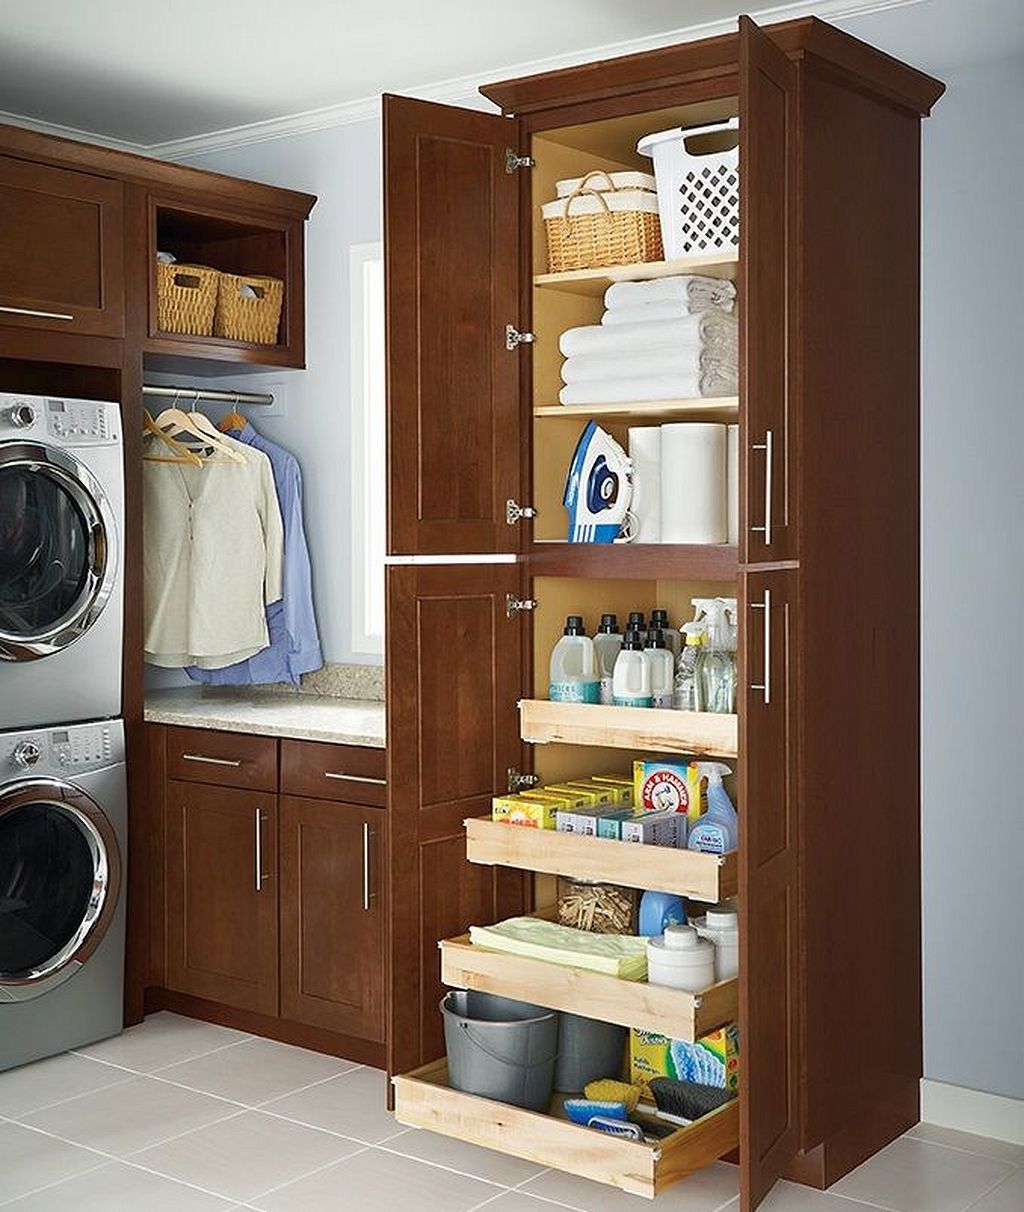 90 Laundry Room Cabinet Ideas With Images Diy Laundry Room